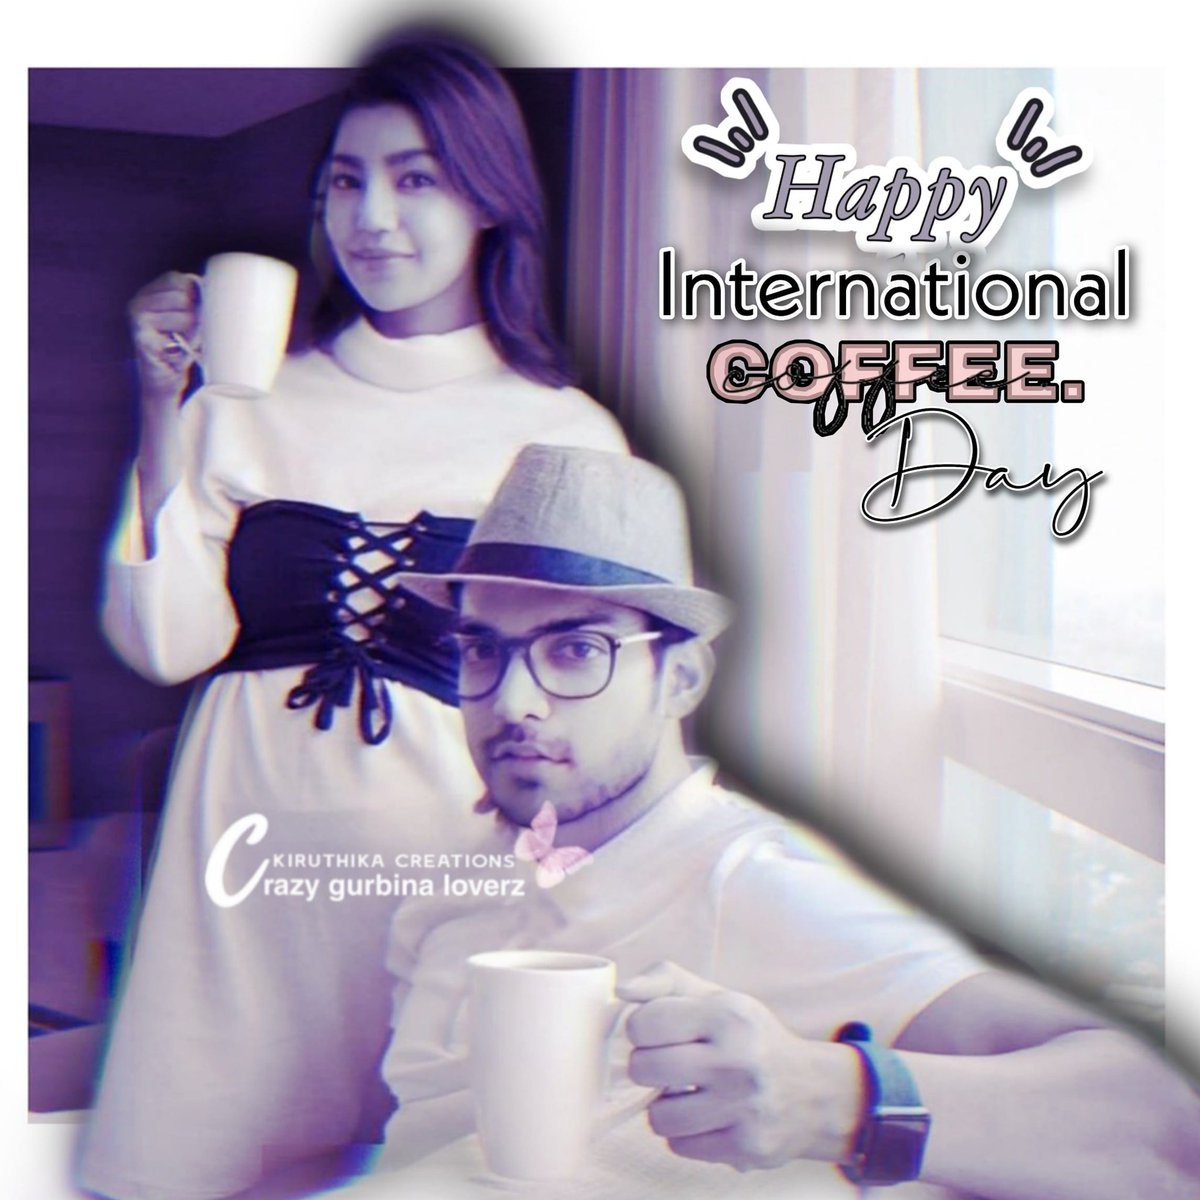 How come being a #Coffee lover... can stop myself from posting my Lovebirds with ☕ cup... tried out #Teenage version of #Gurbina 😊   #HappyInternationalcoffeeday   Get well soon dears ❤️ #Gurmeetchoudhary #Debinabonnerjee sending lots love and prayers🙏 https://t.co/i92gftO7F2